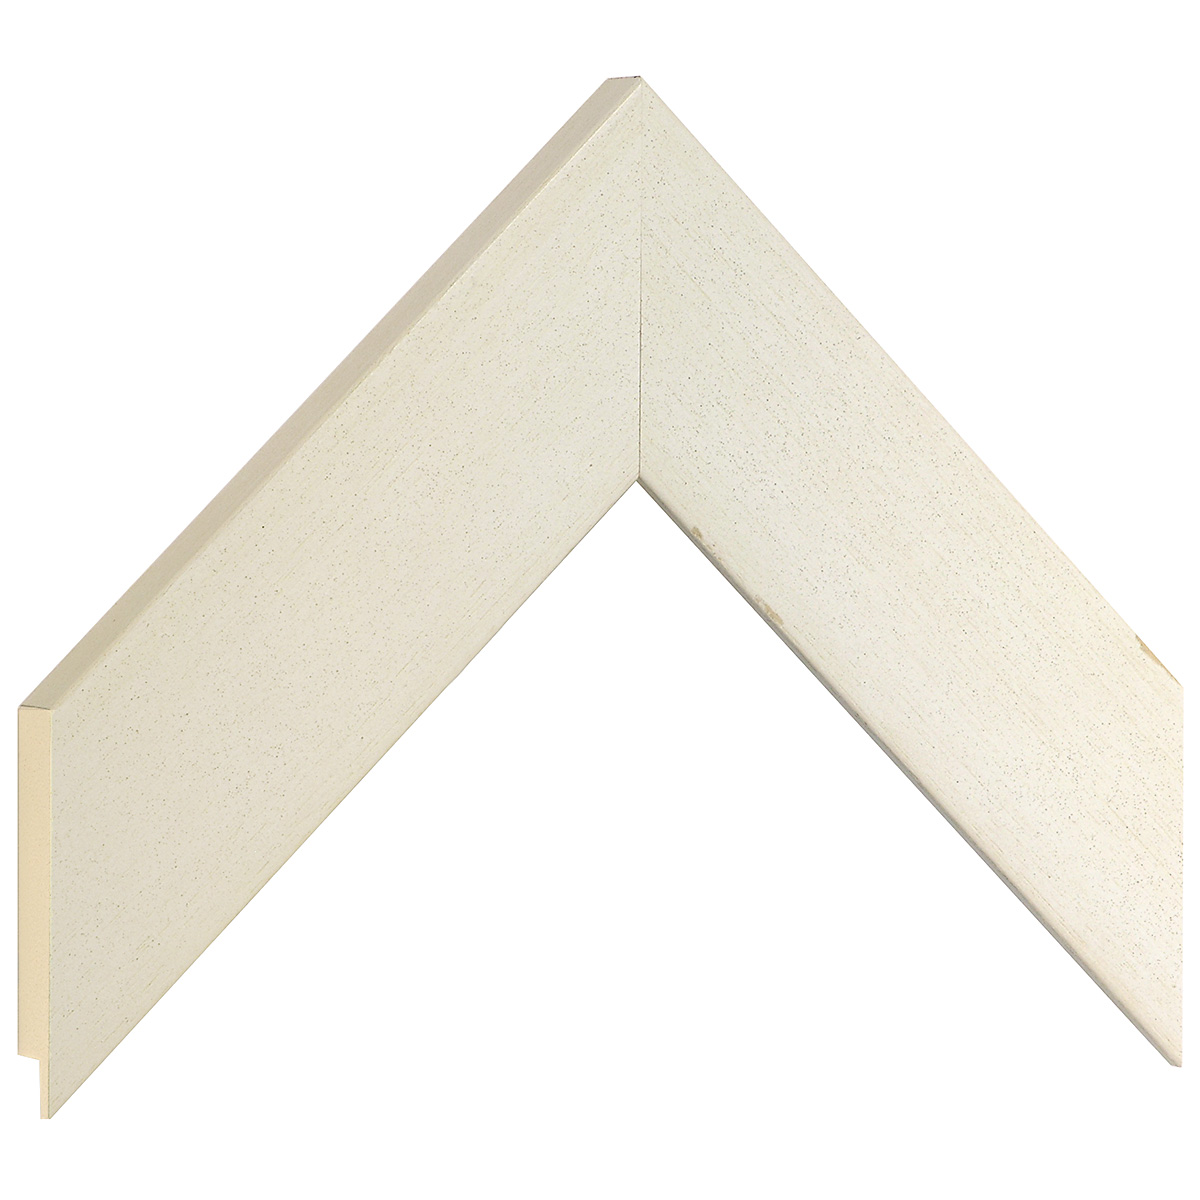 Moulding ayous 49mm - distressed cream finish